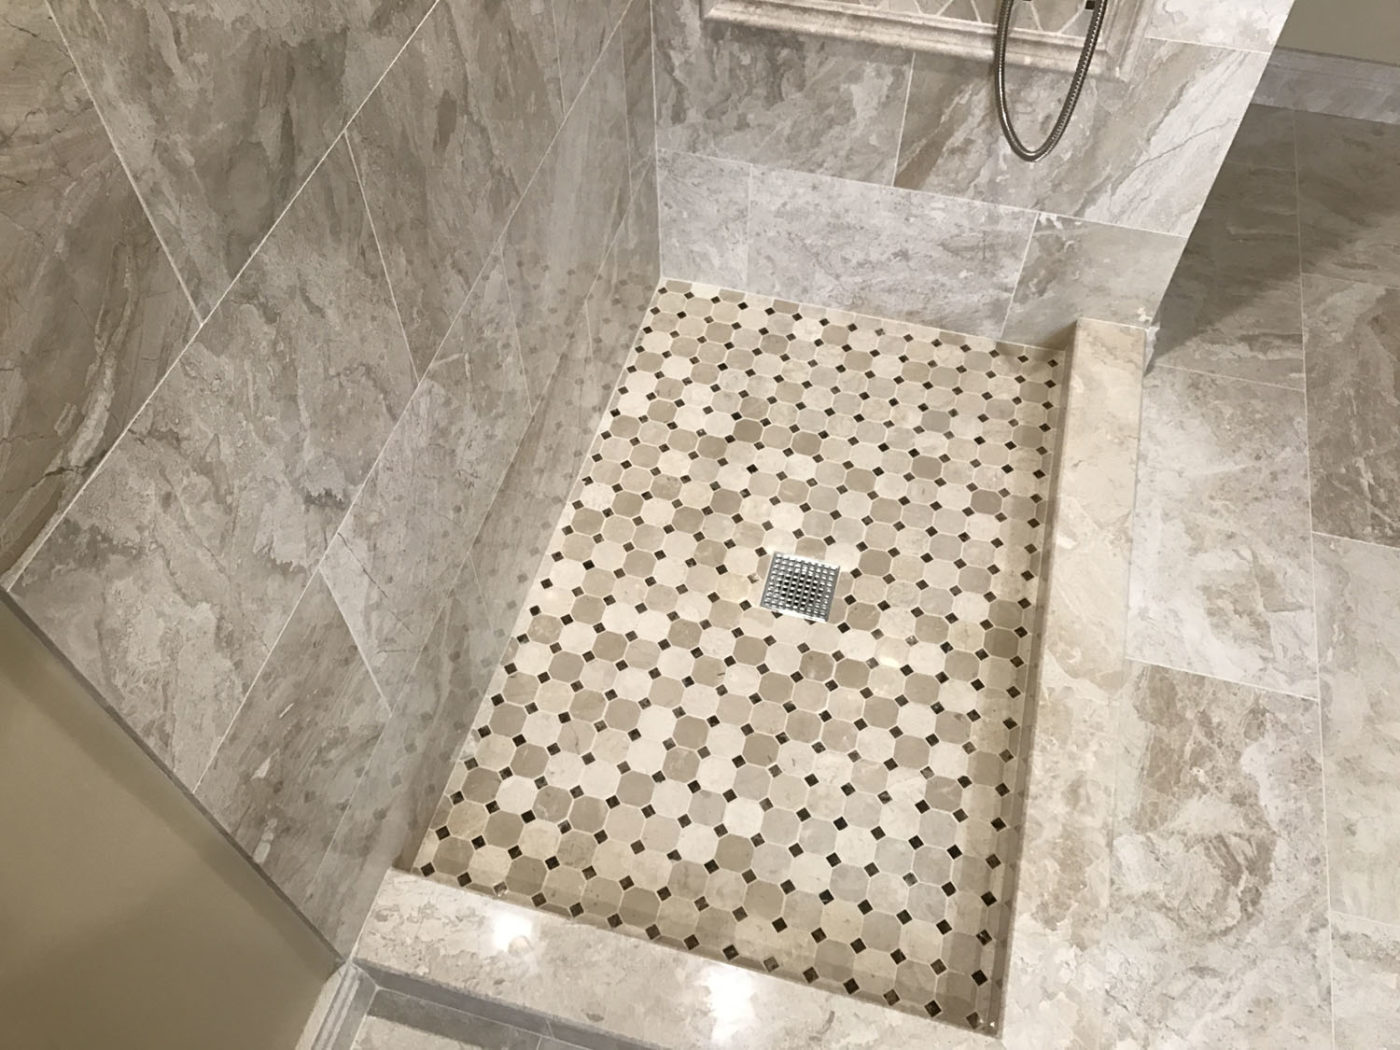 Bathroom contracting Schaumburg new shower and stone tile